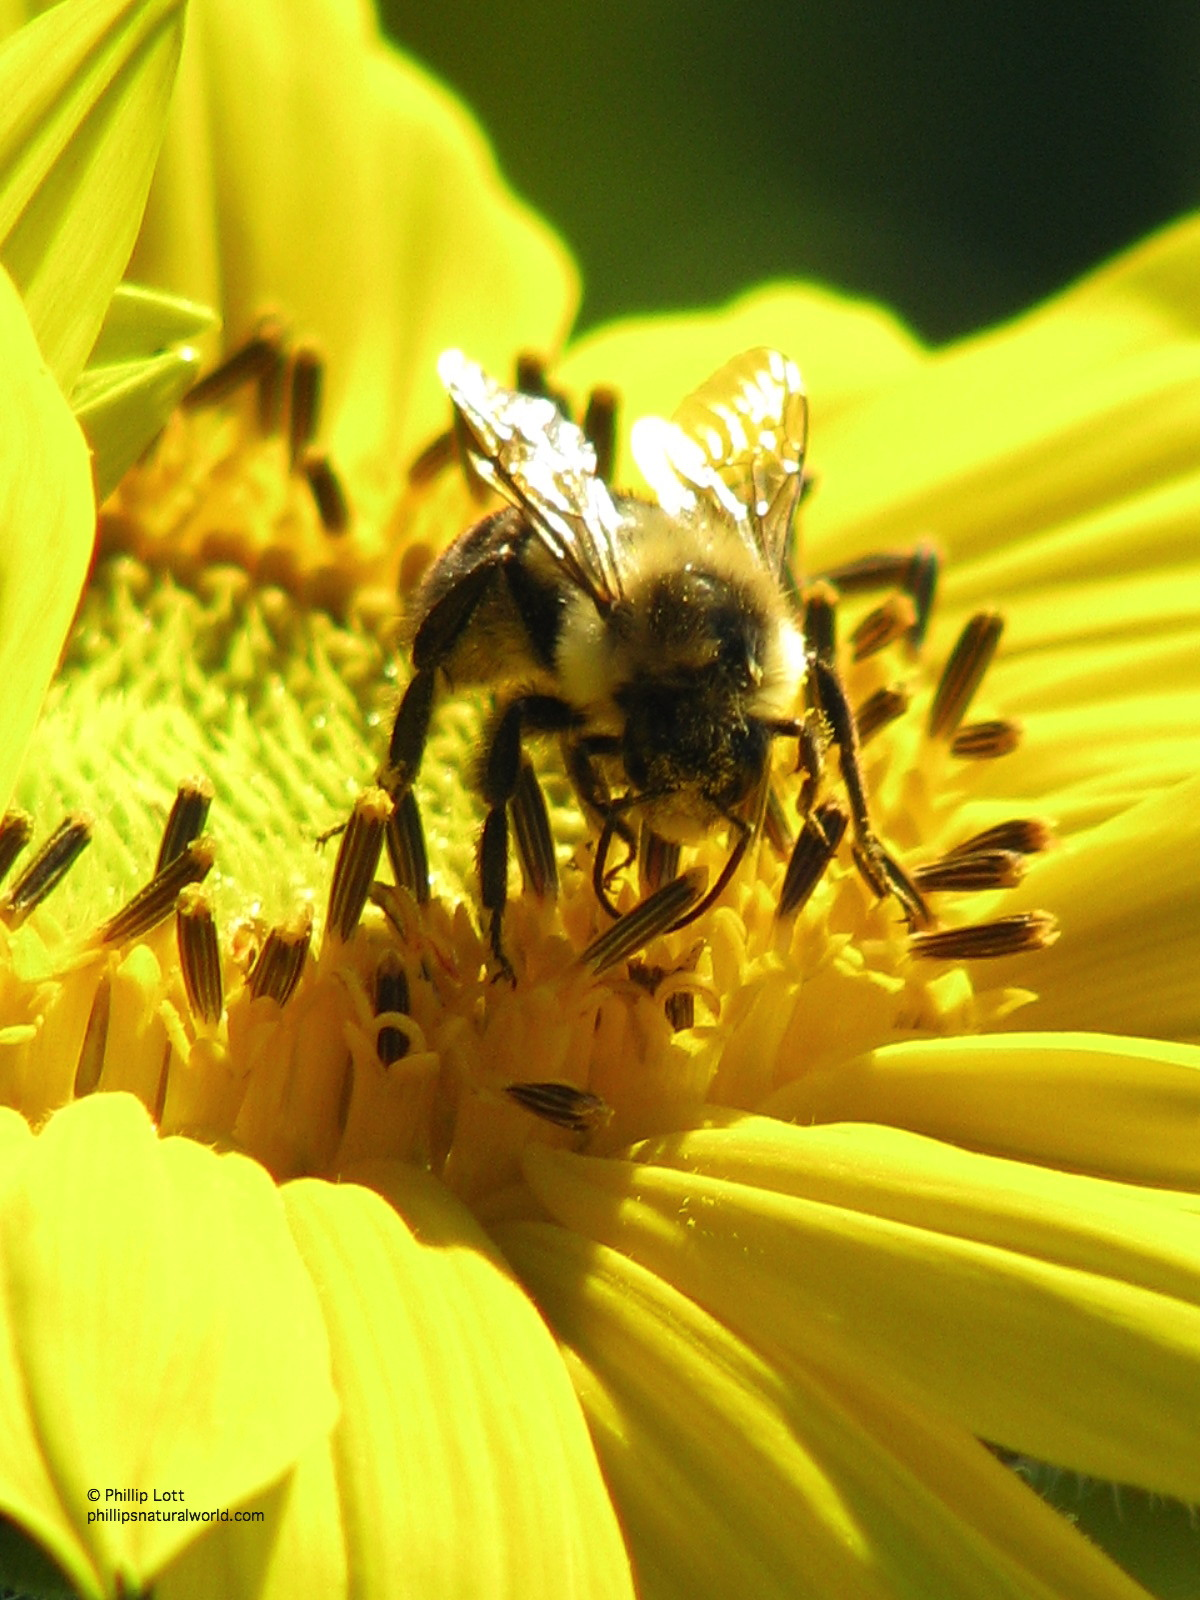 The Secret Life of Bees | Phillip's Natural World